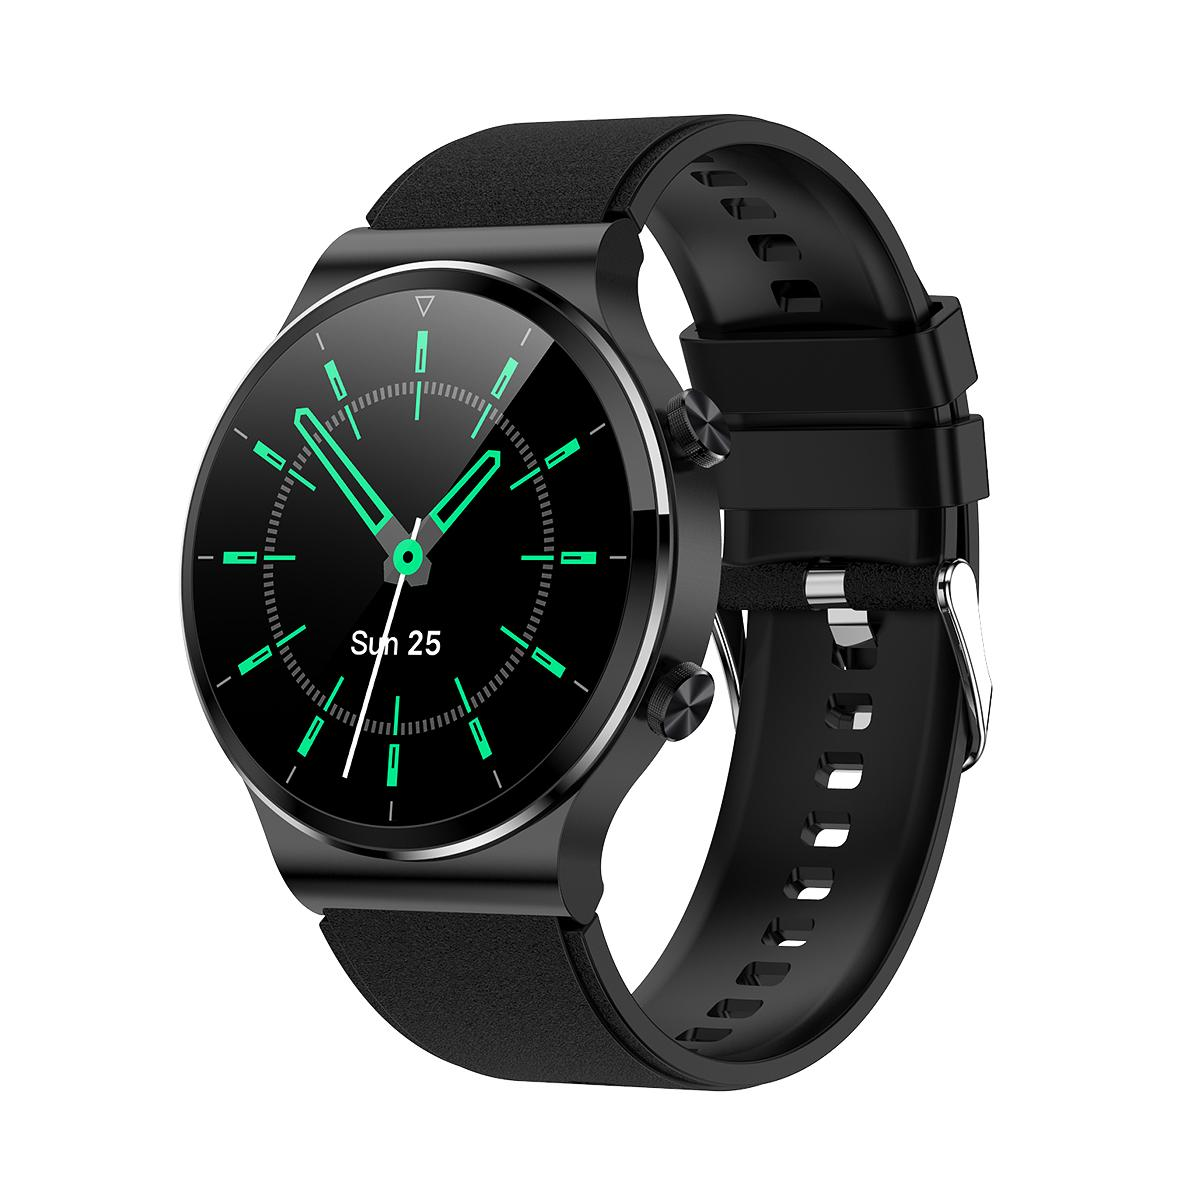 G51 Local muic player smart watch with heart rate/answer call/dial number 4